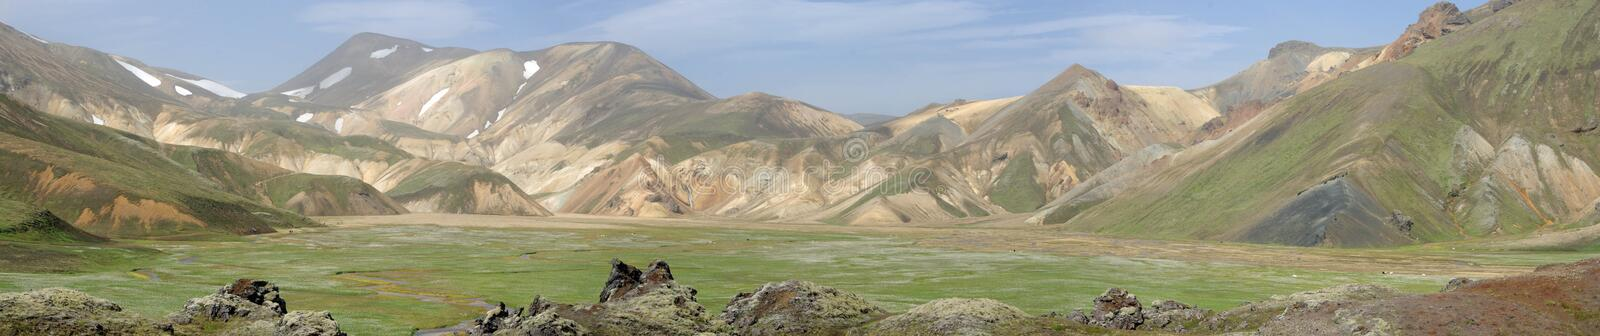 Iceland panoramic view of Landmannalaugar and these colorful mountains. There are mountains, a green plain, fields of ashes royalty free stock photography